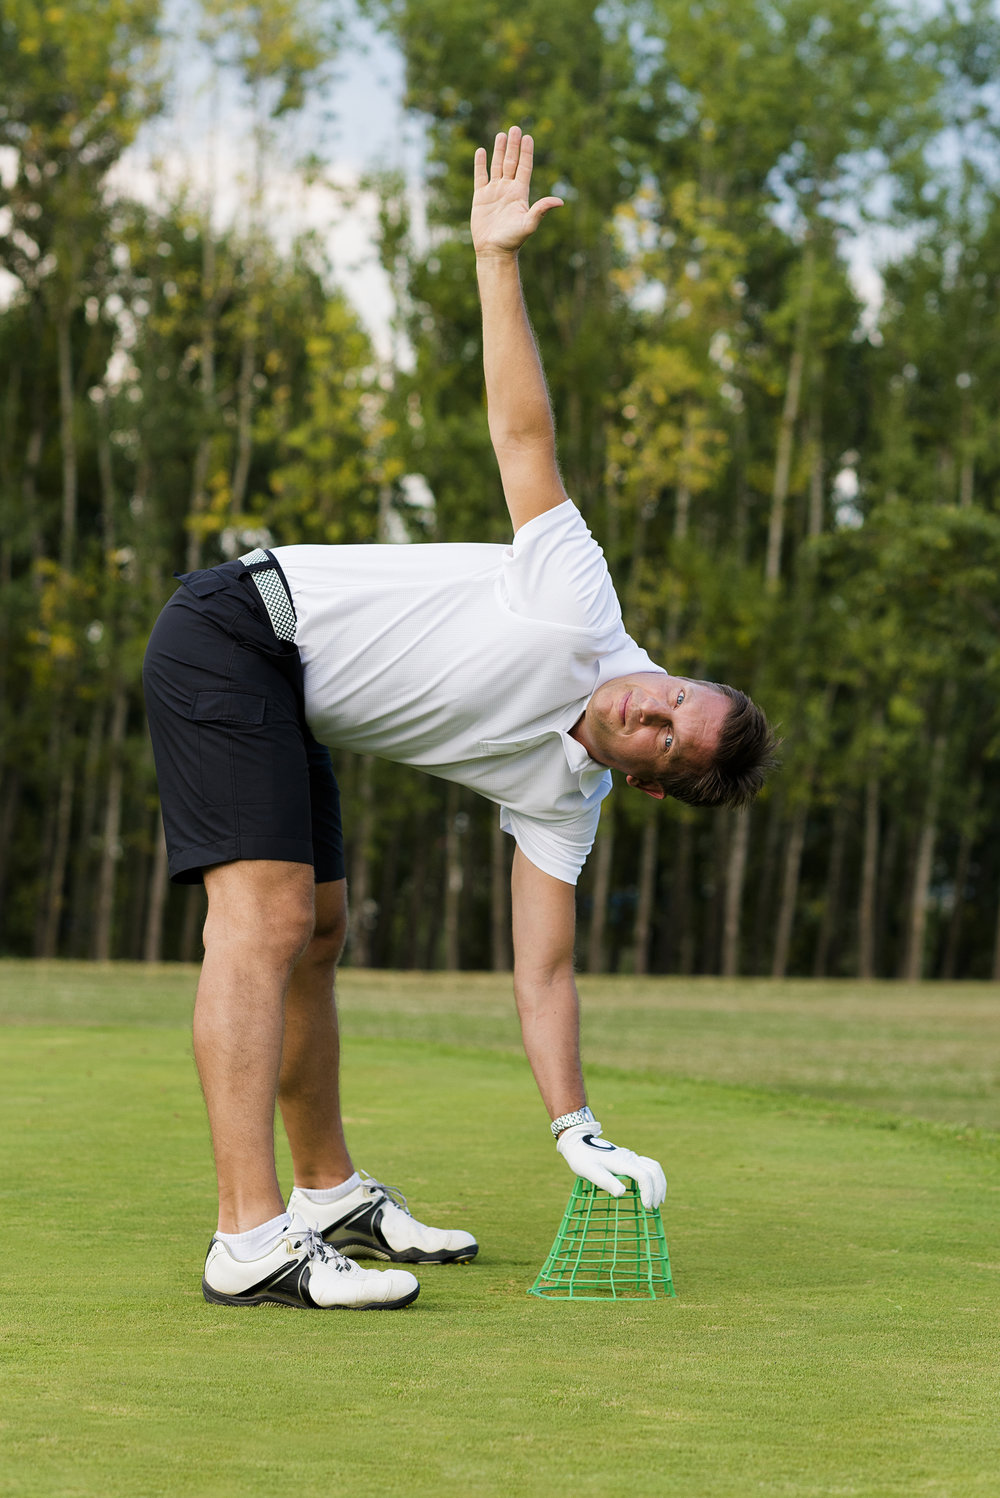 Do you want to improve your golf? - Better flexibility allows for a fuller range of motion and a more powerful swing.